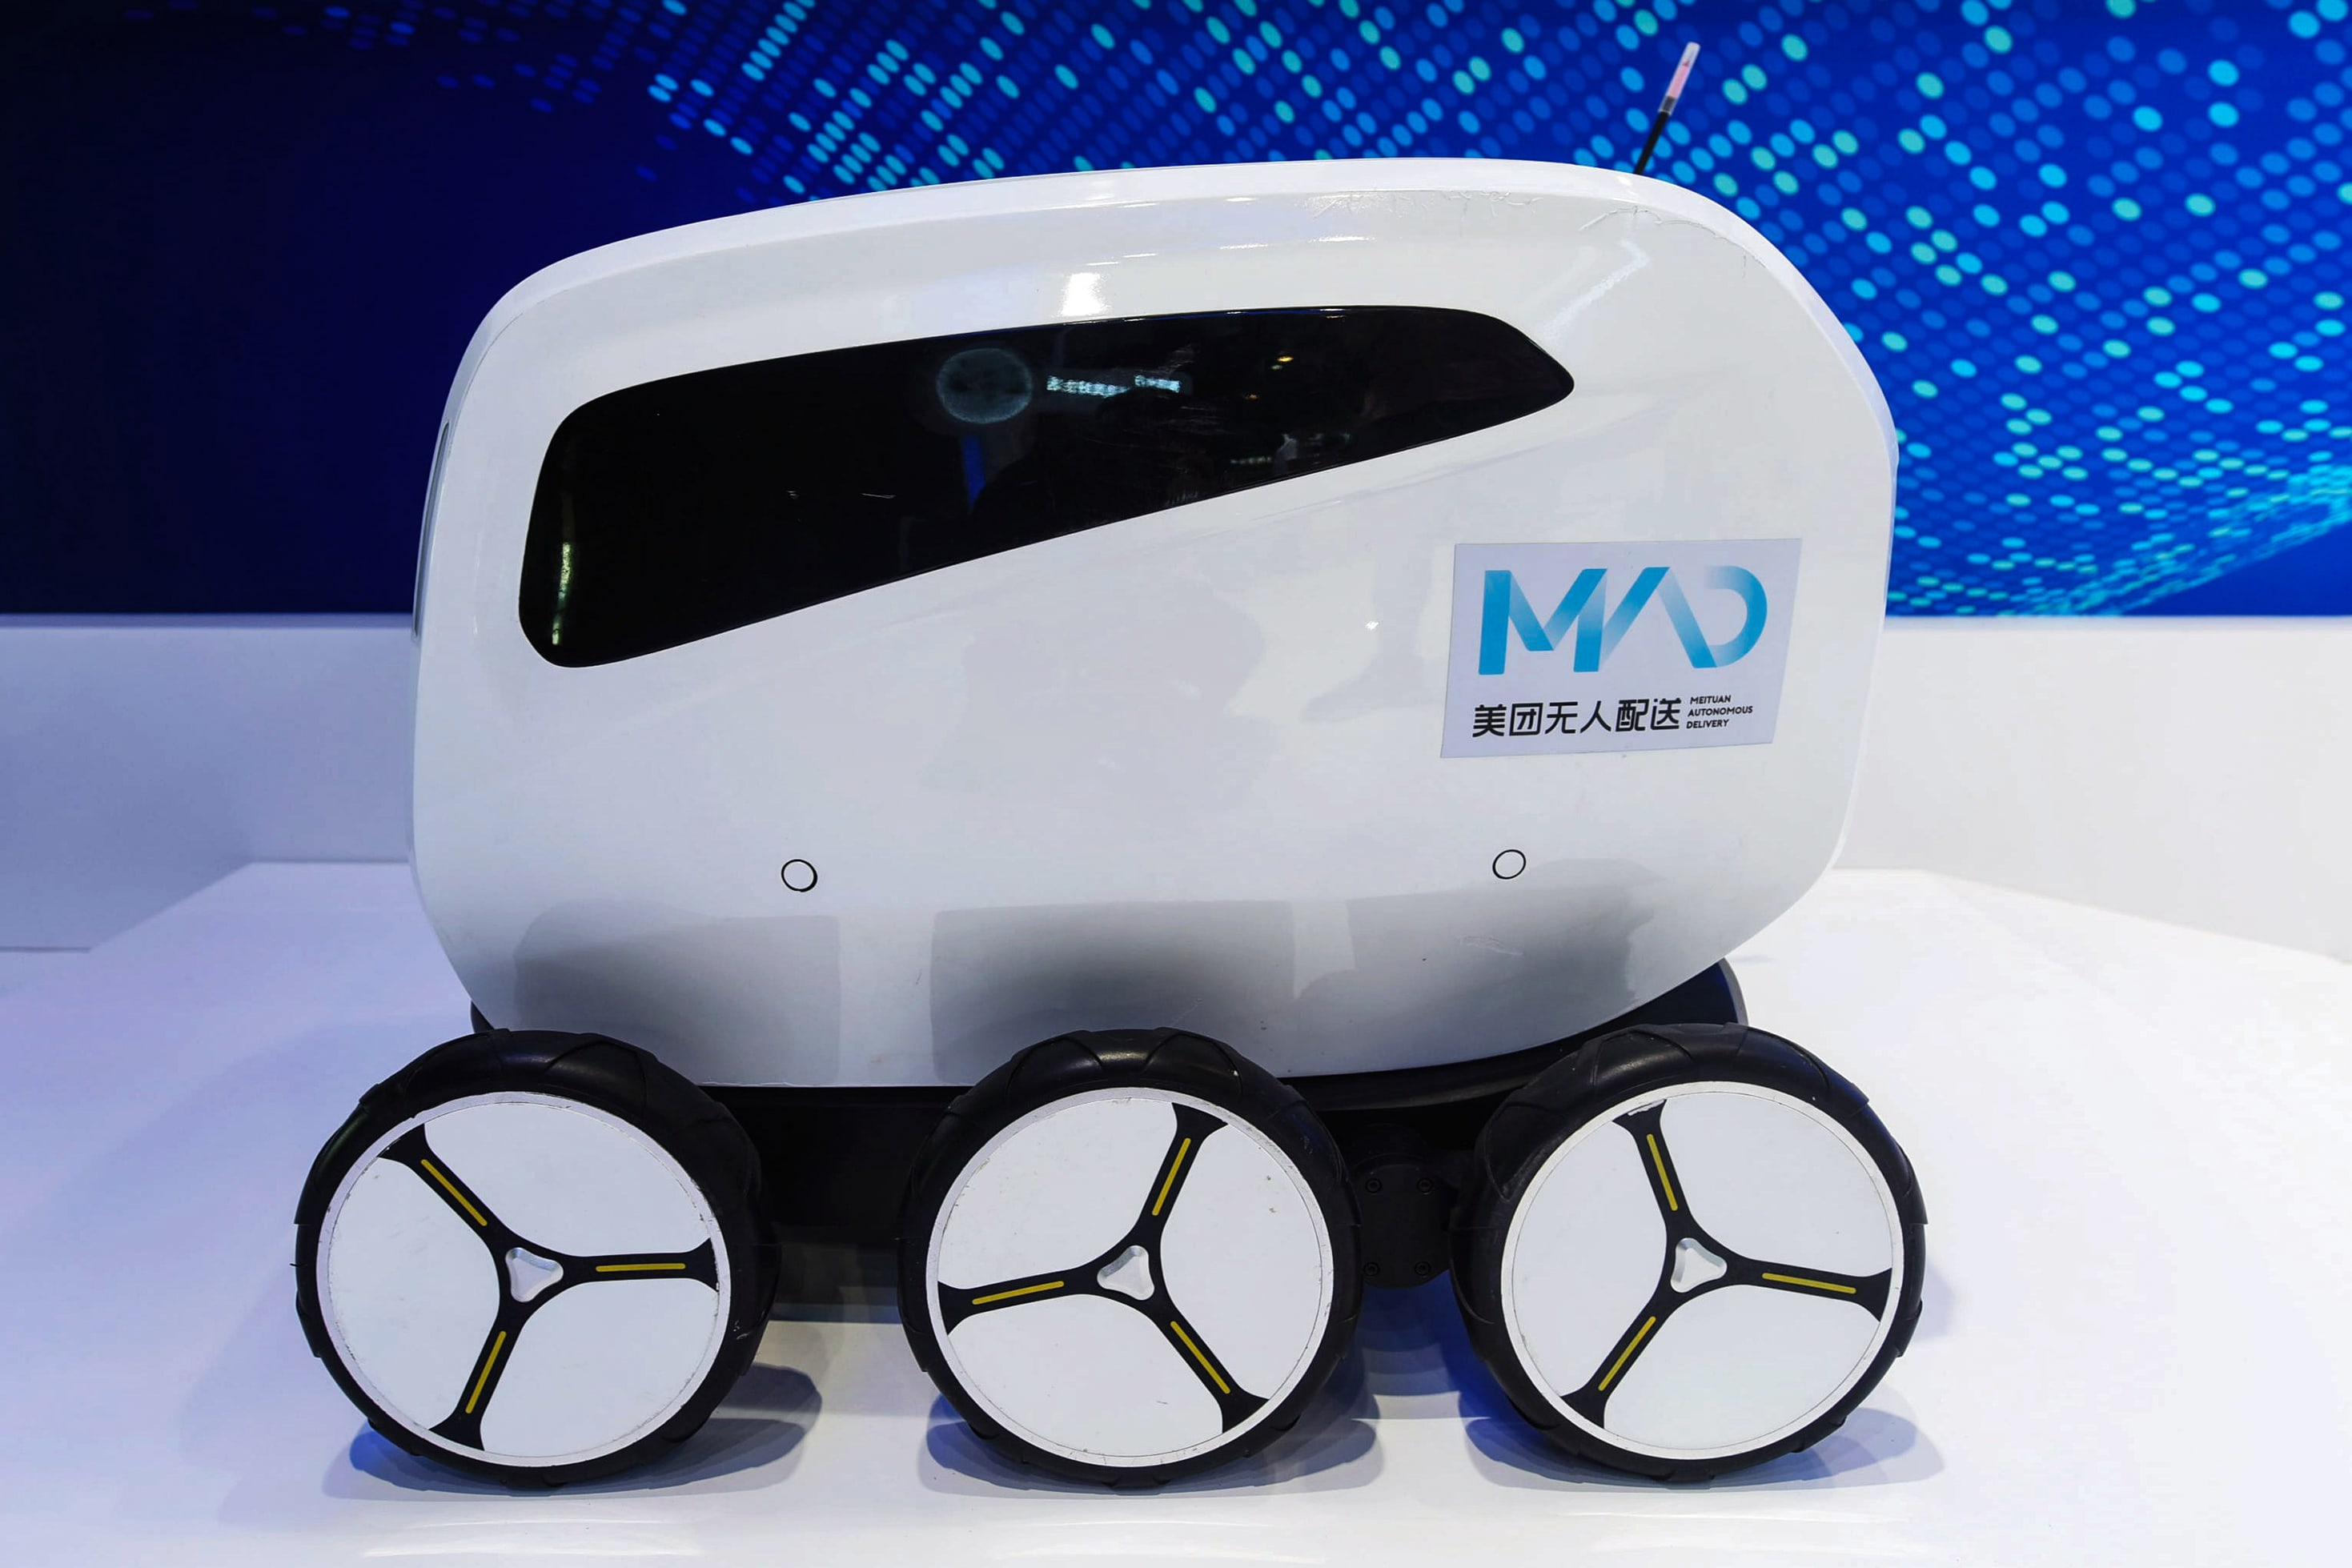 China's Robot Innovation Takes A Giant Step Forward